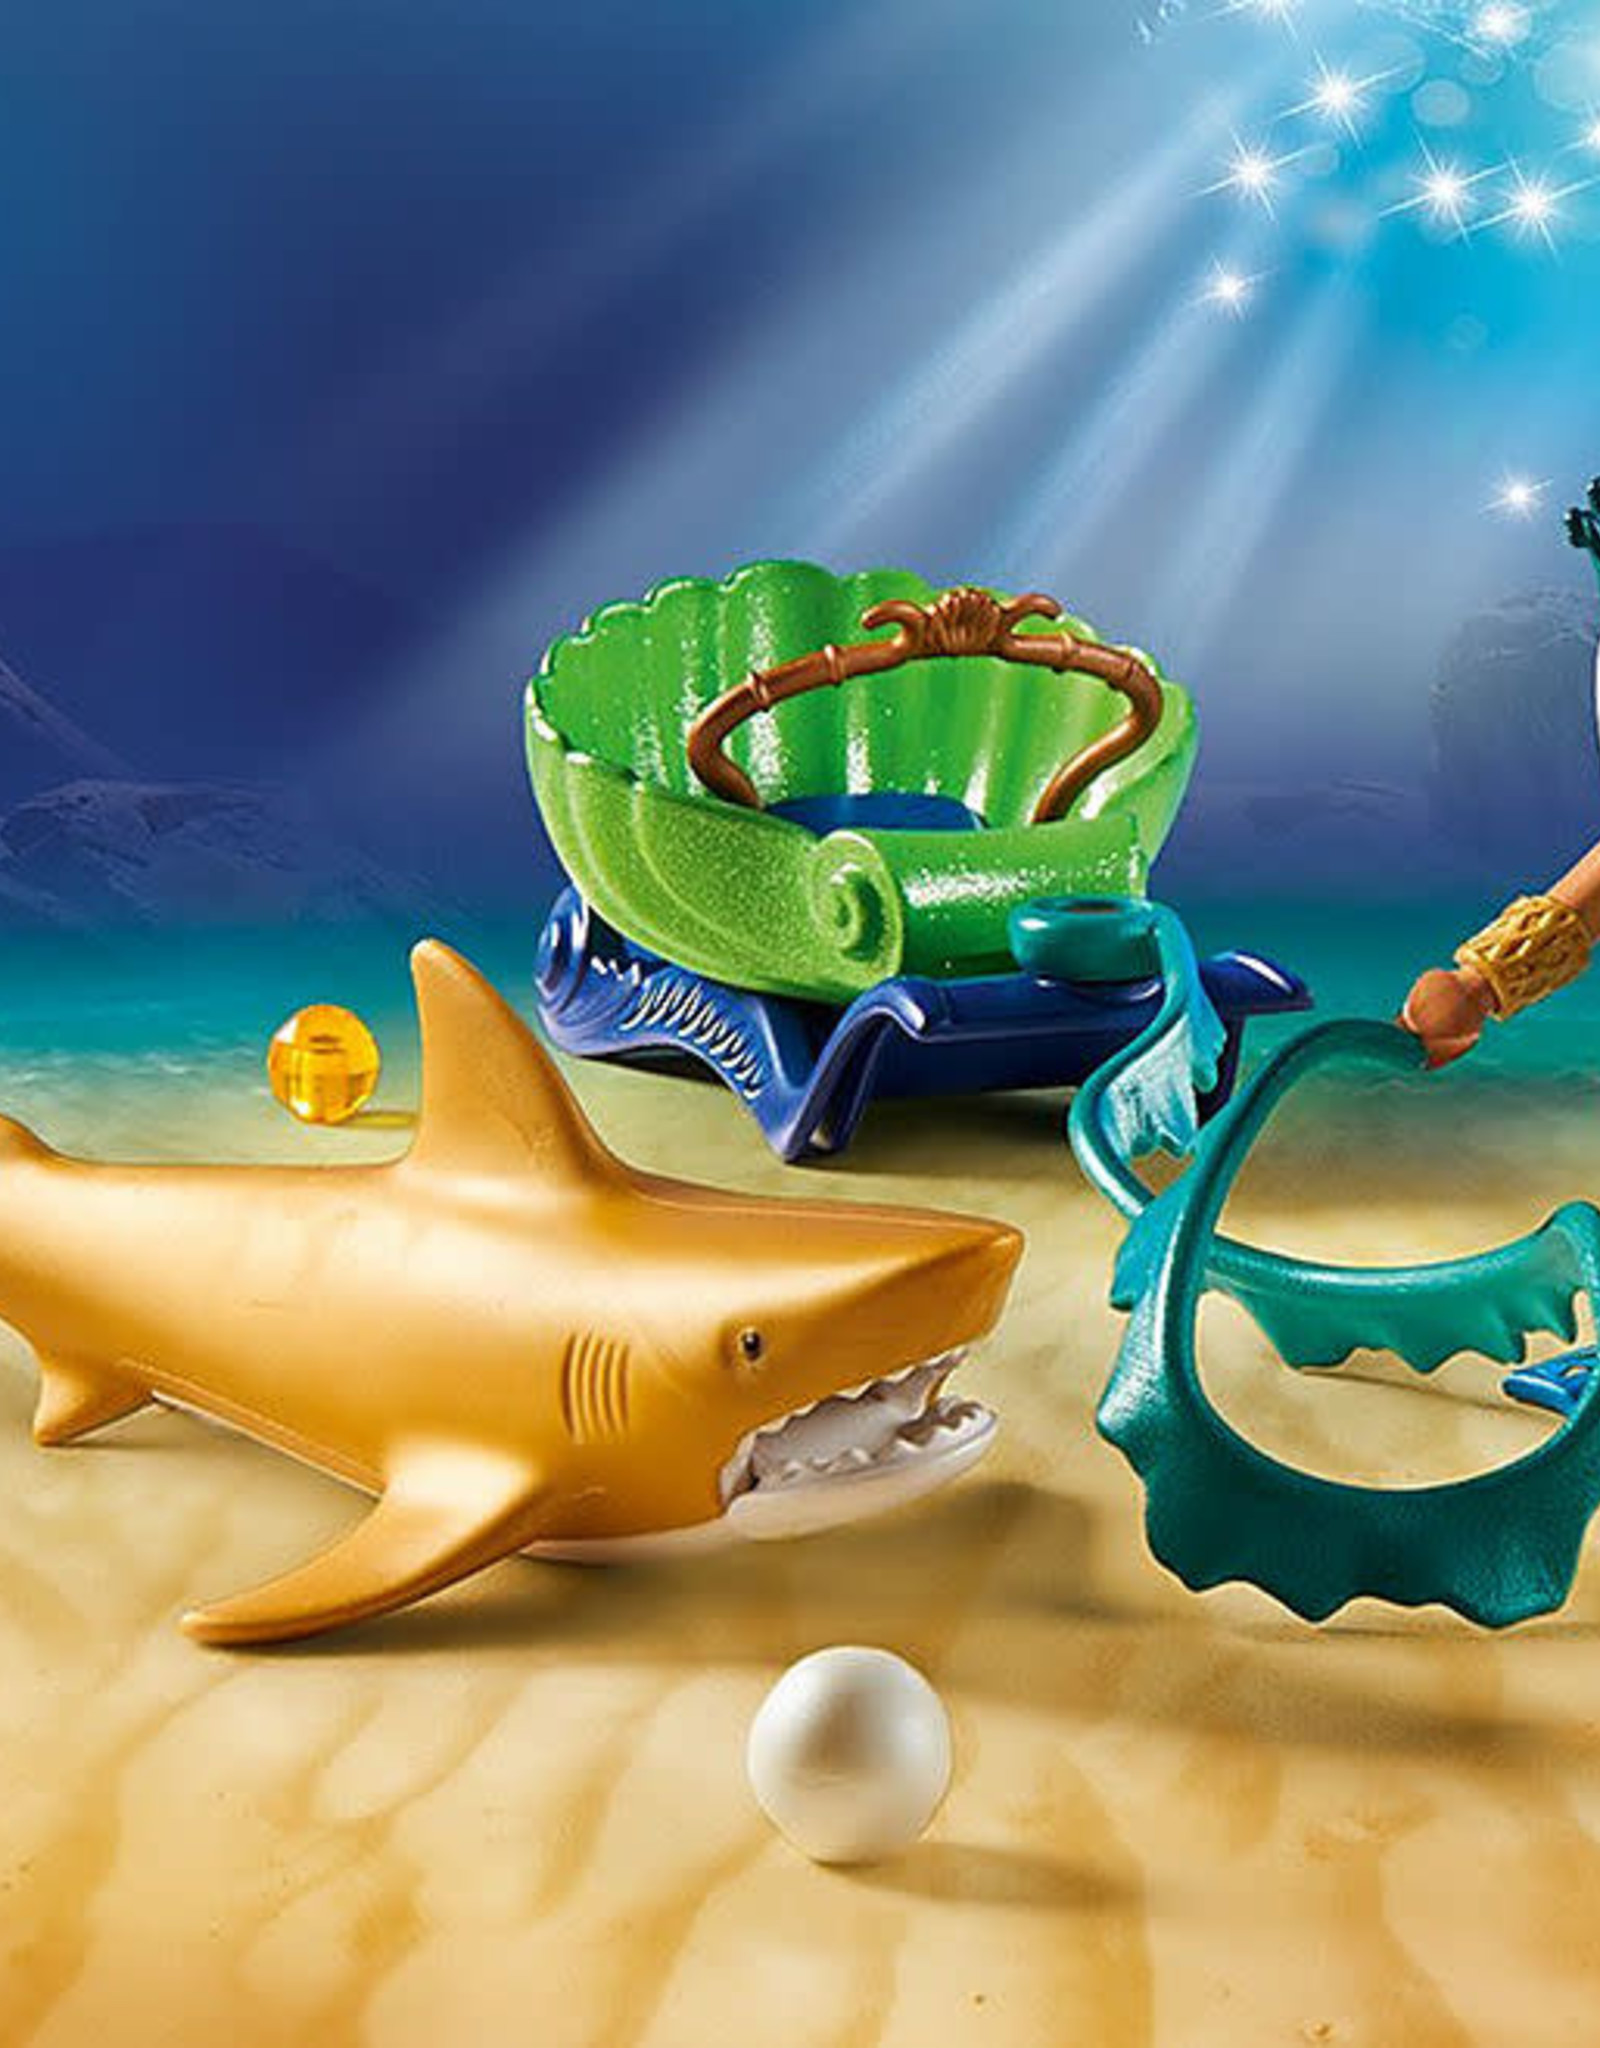 Playmobil PM King of the Sea with Shark Carriage